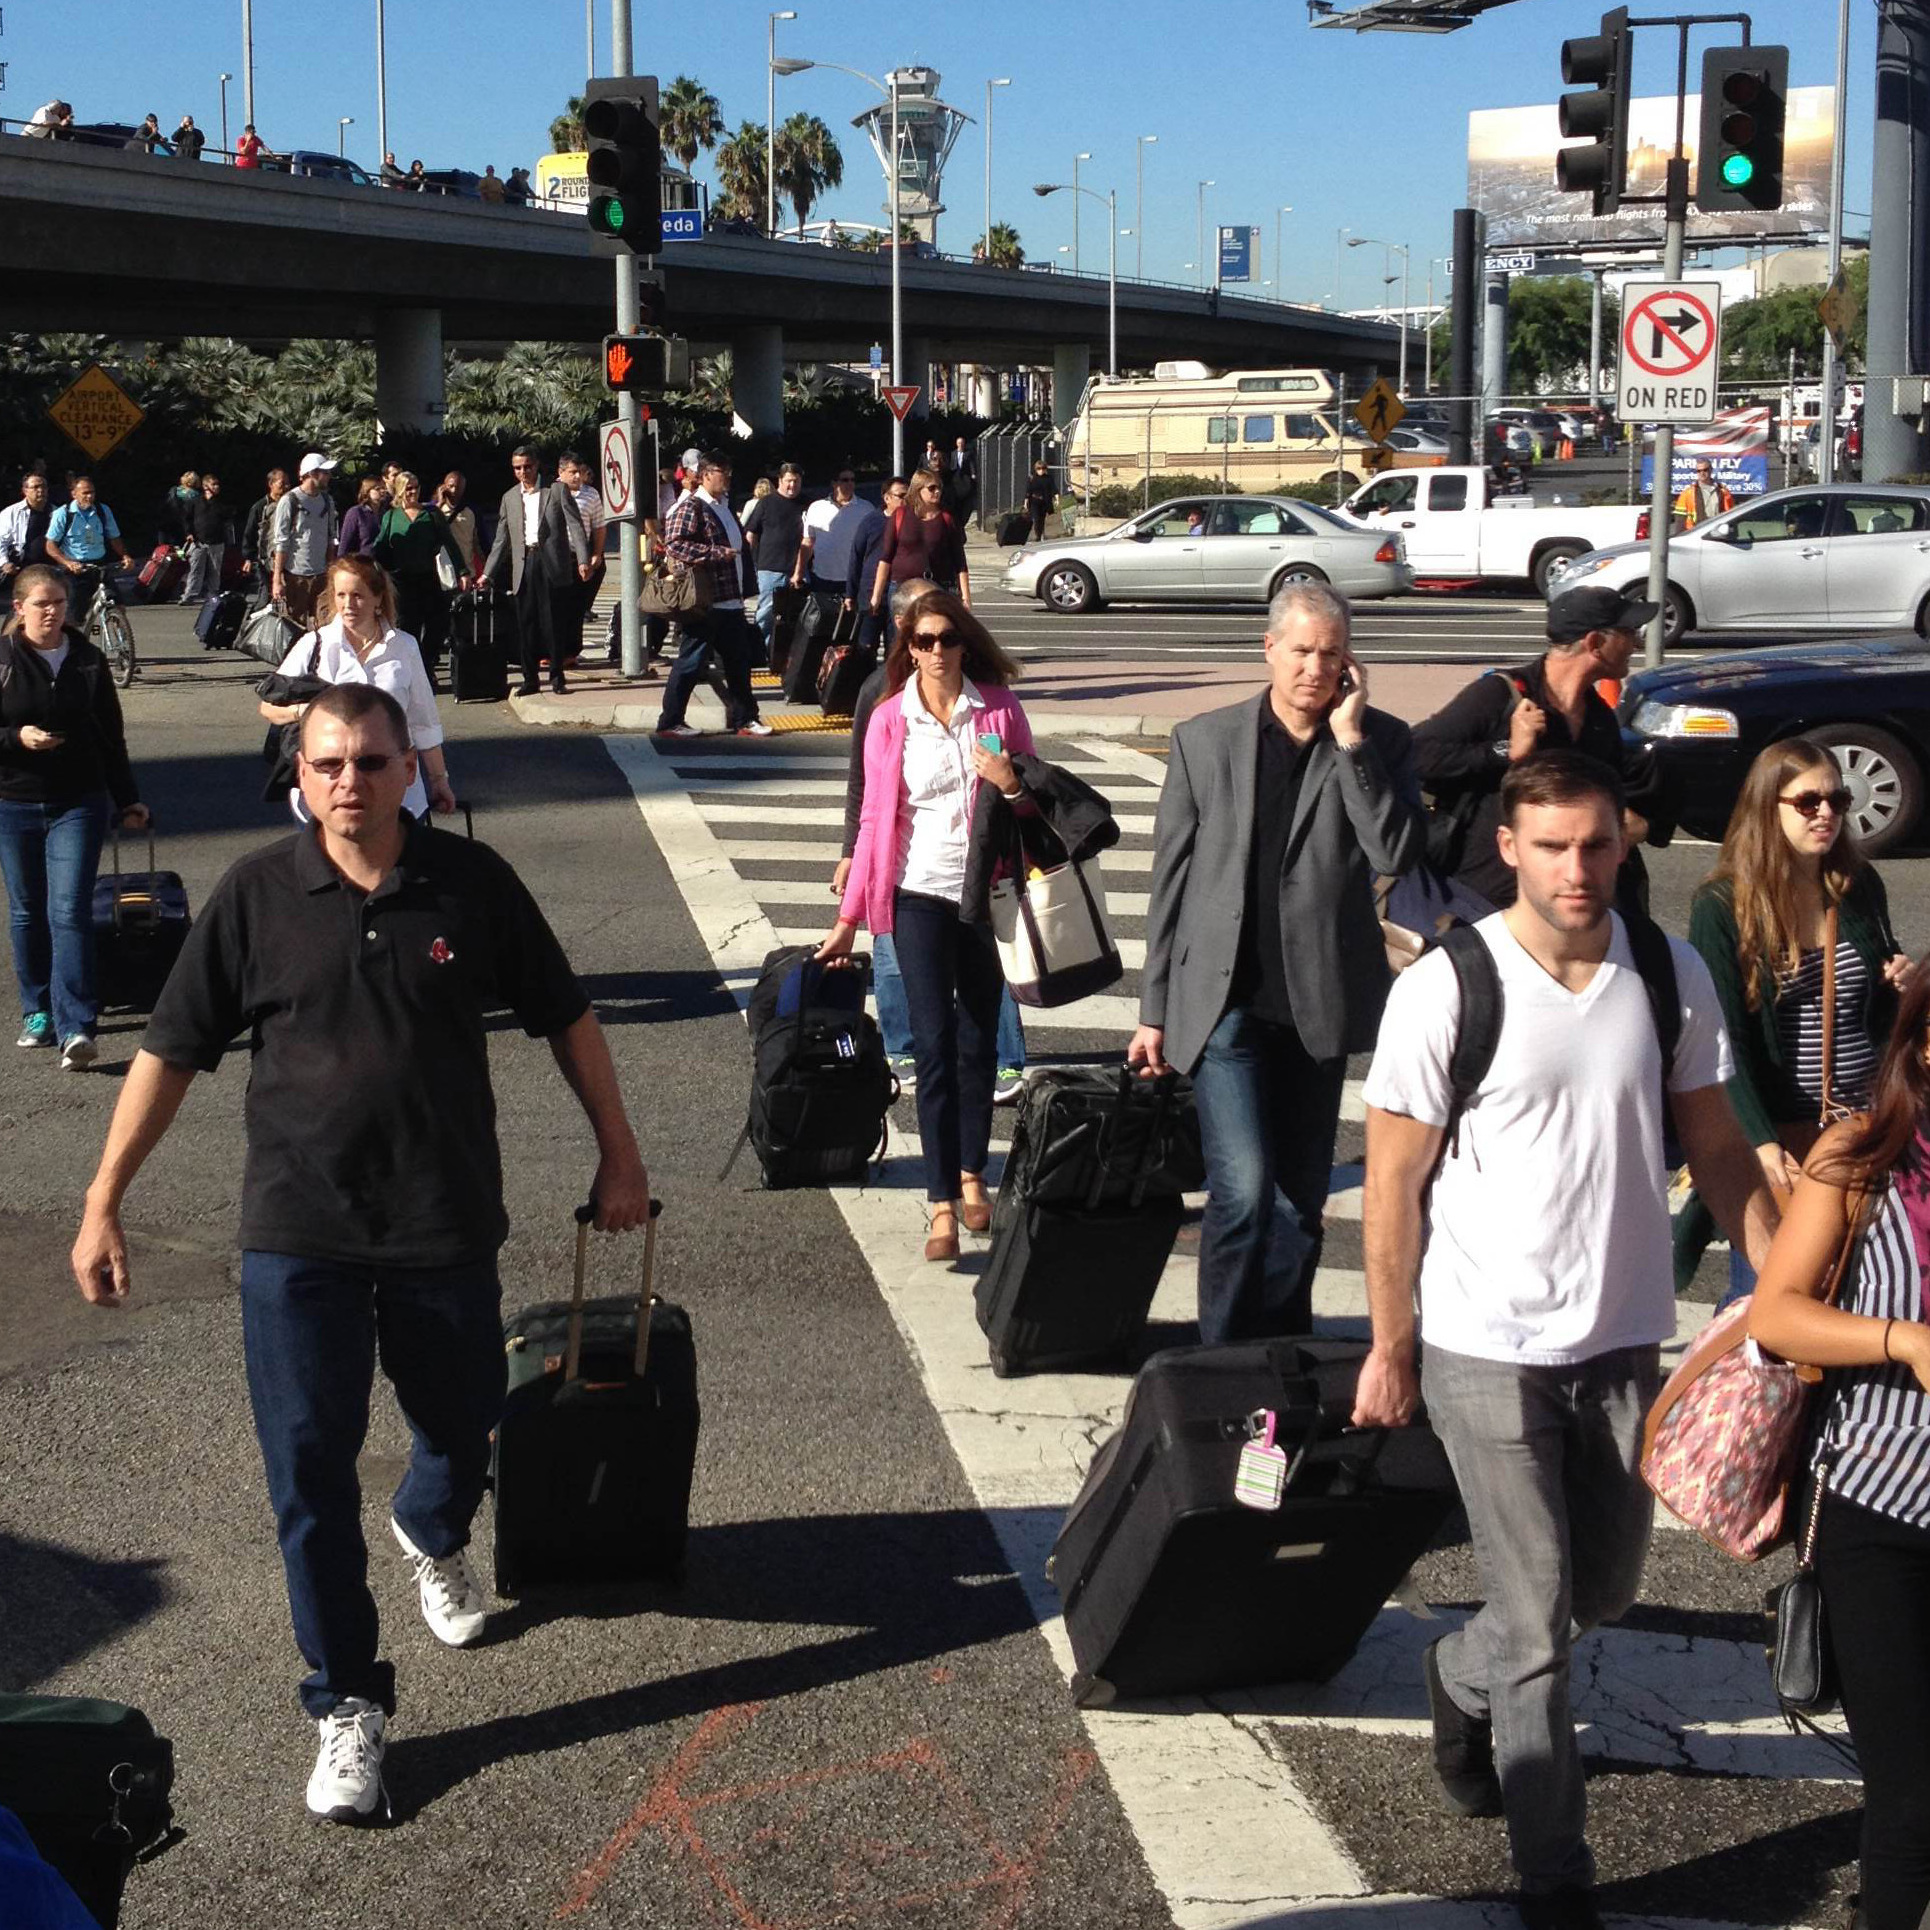 Travelers evacuate the area at Los Angeles International Airport after Friday's shooting incident.